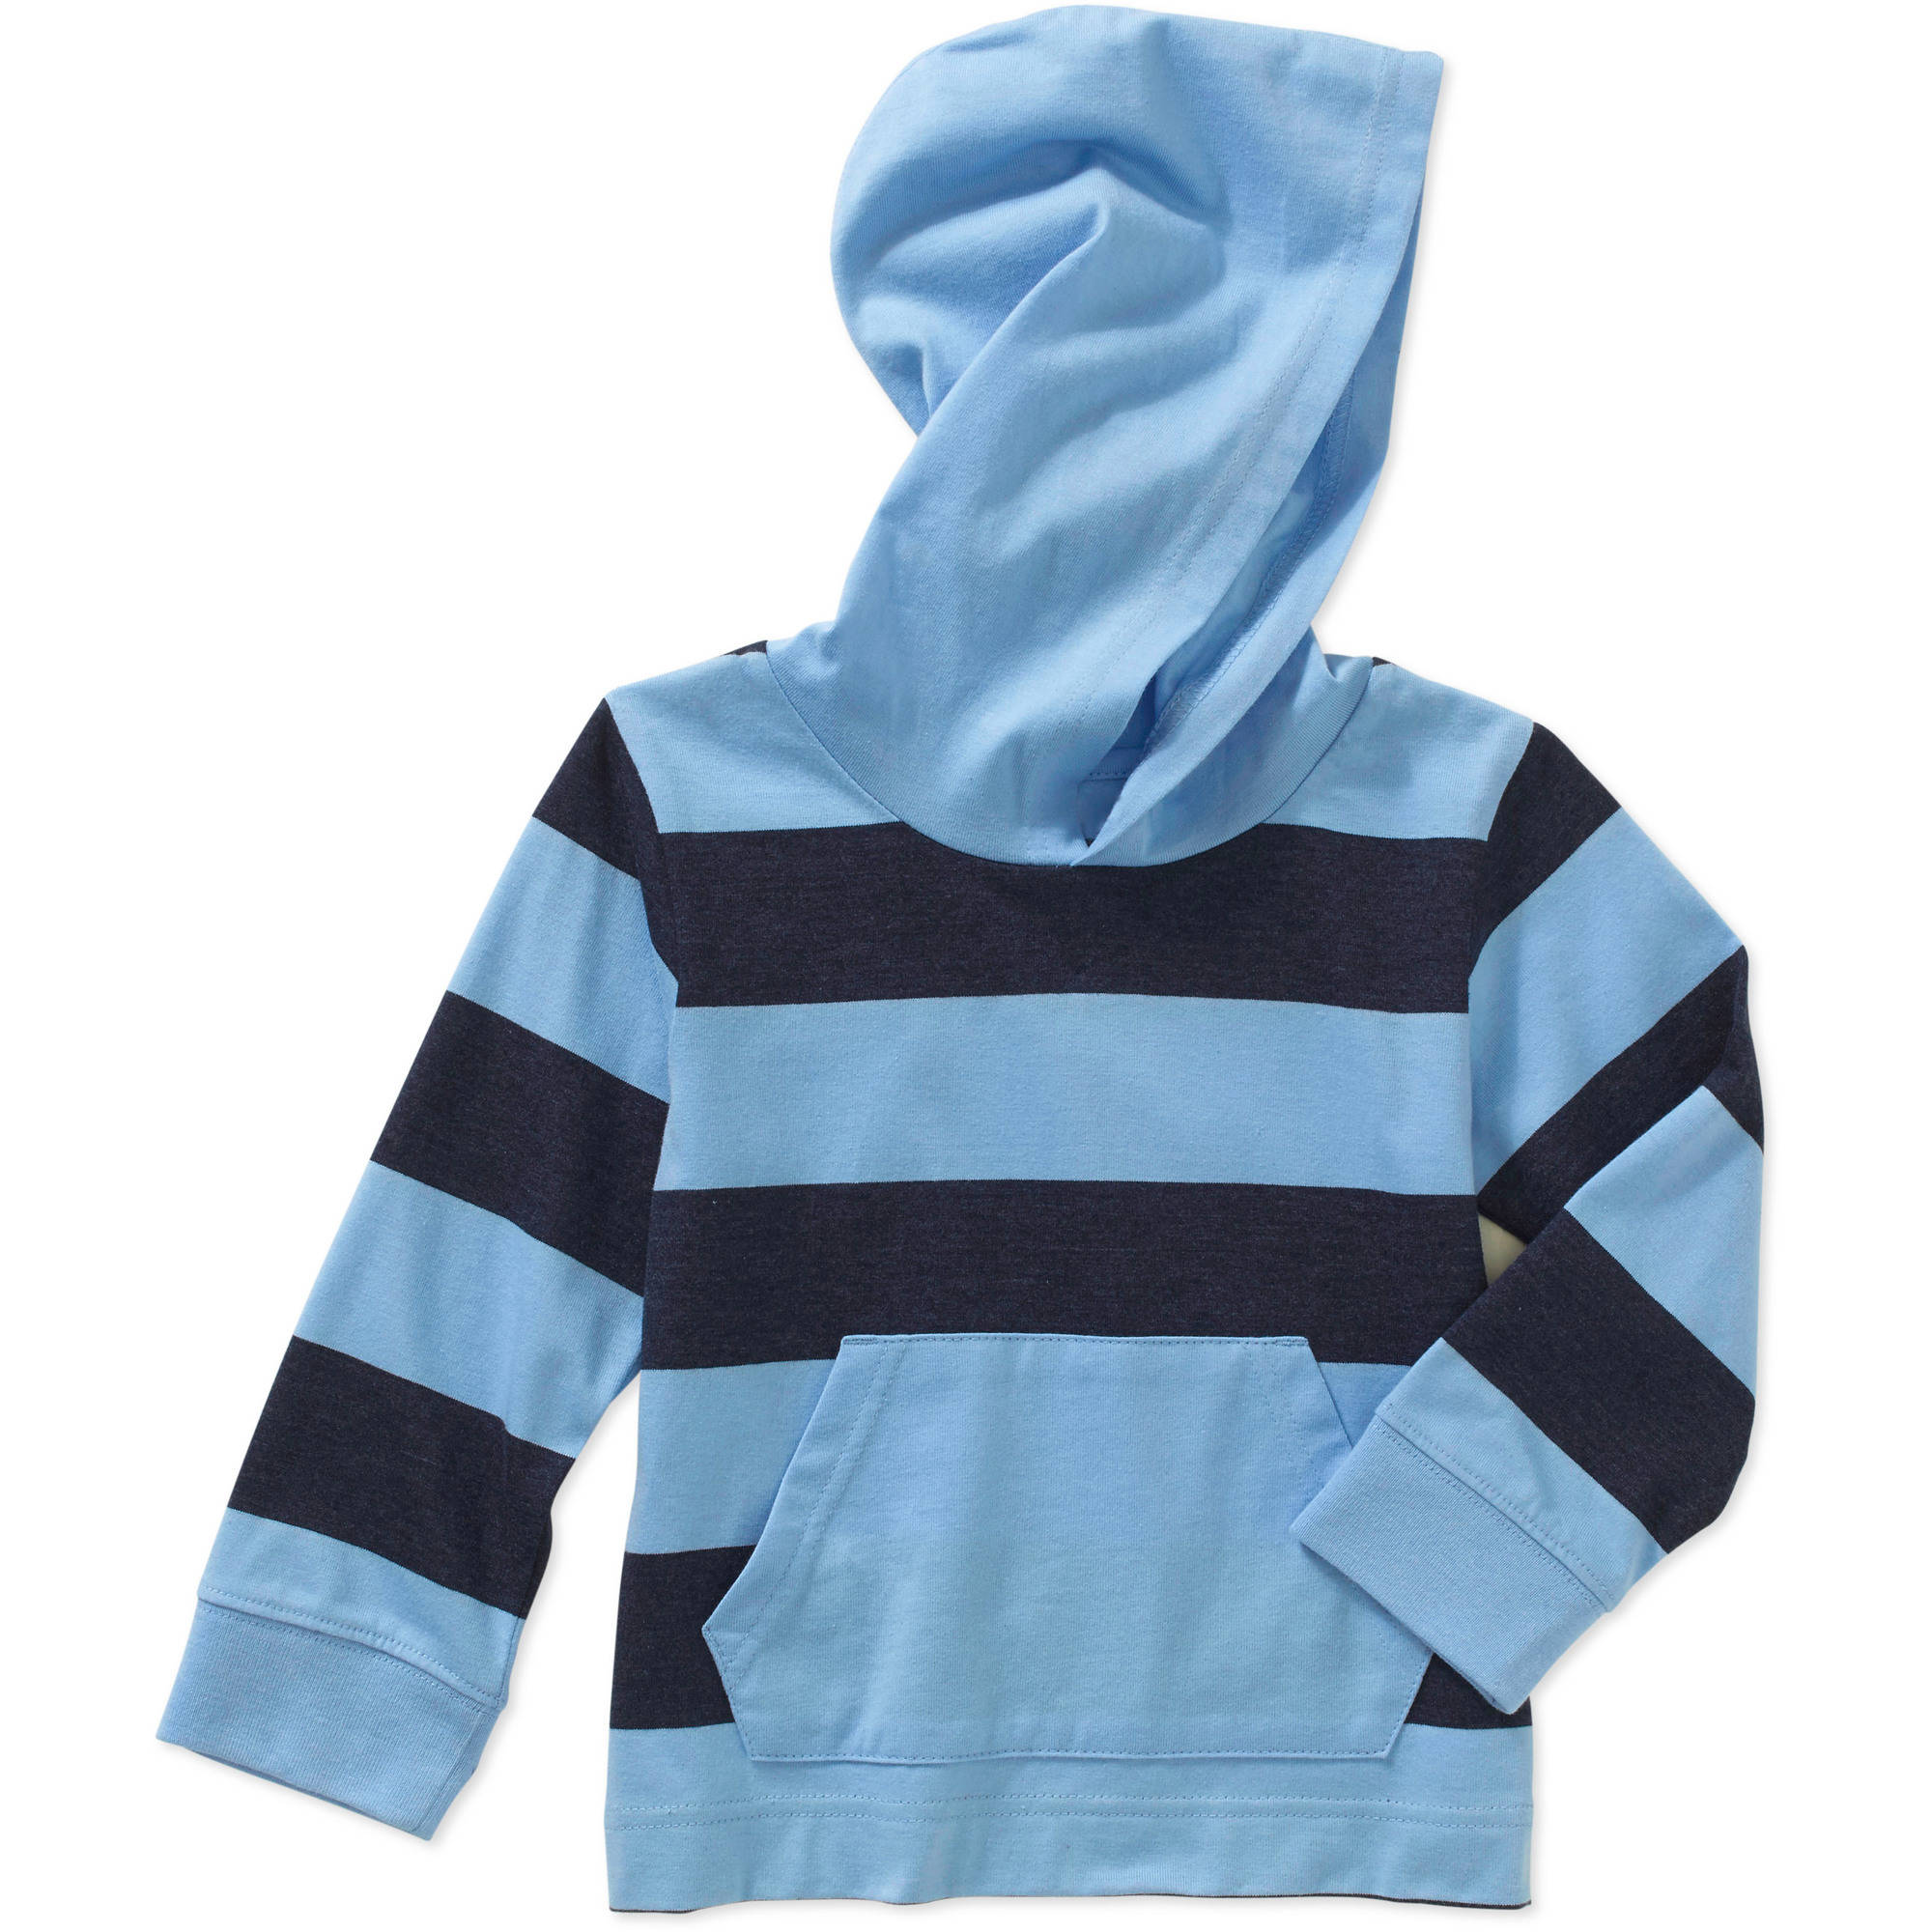 Healthtex Baby Toddler Boys' Jersey Hoodie